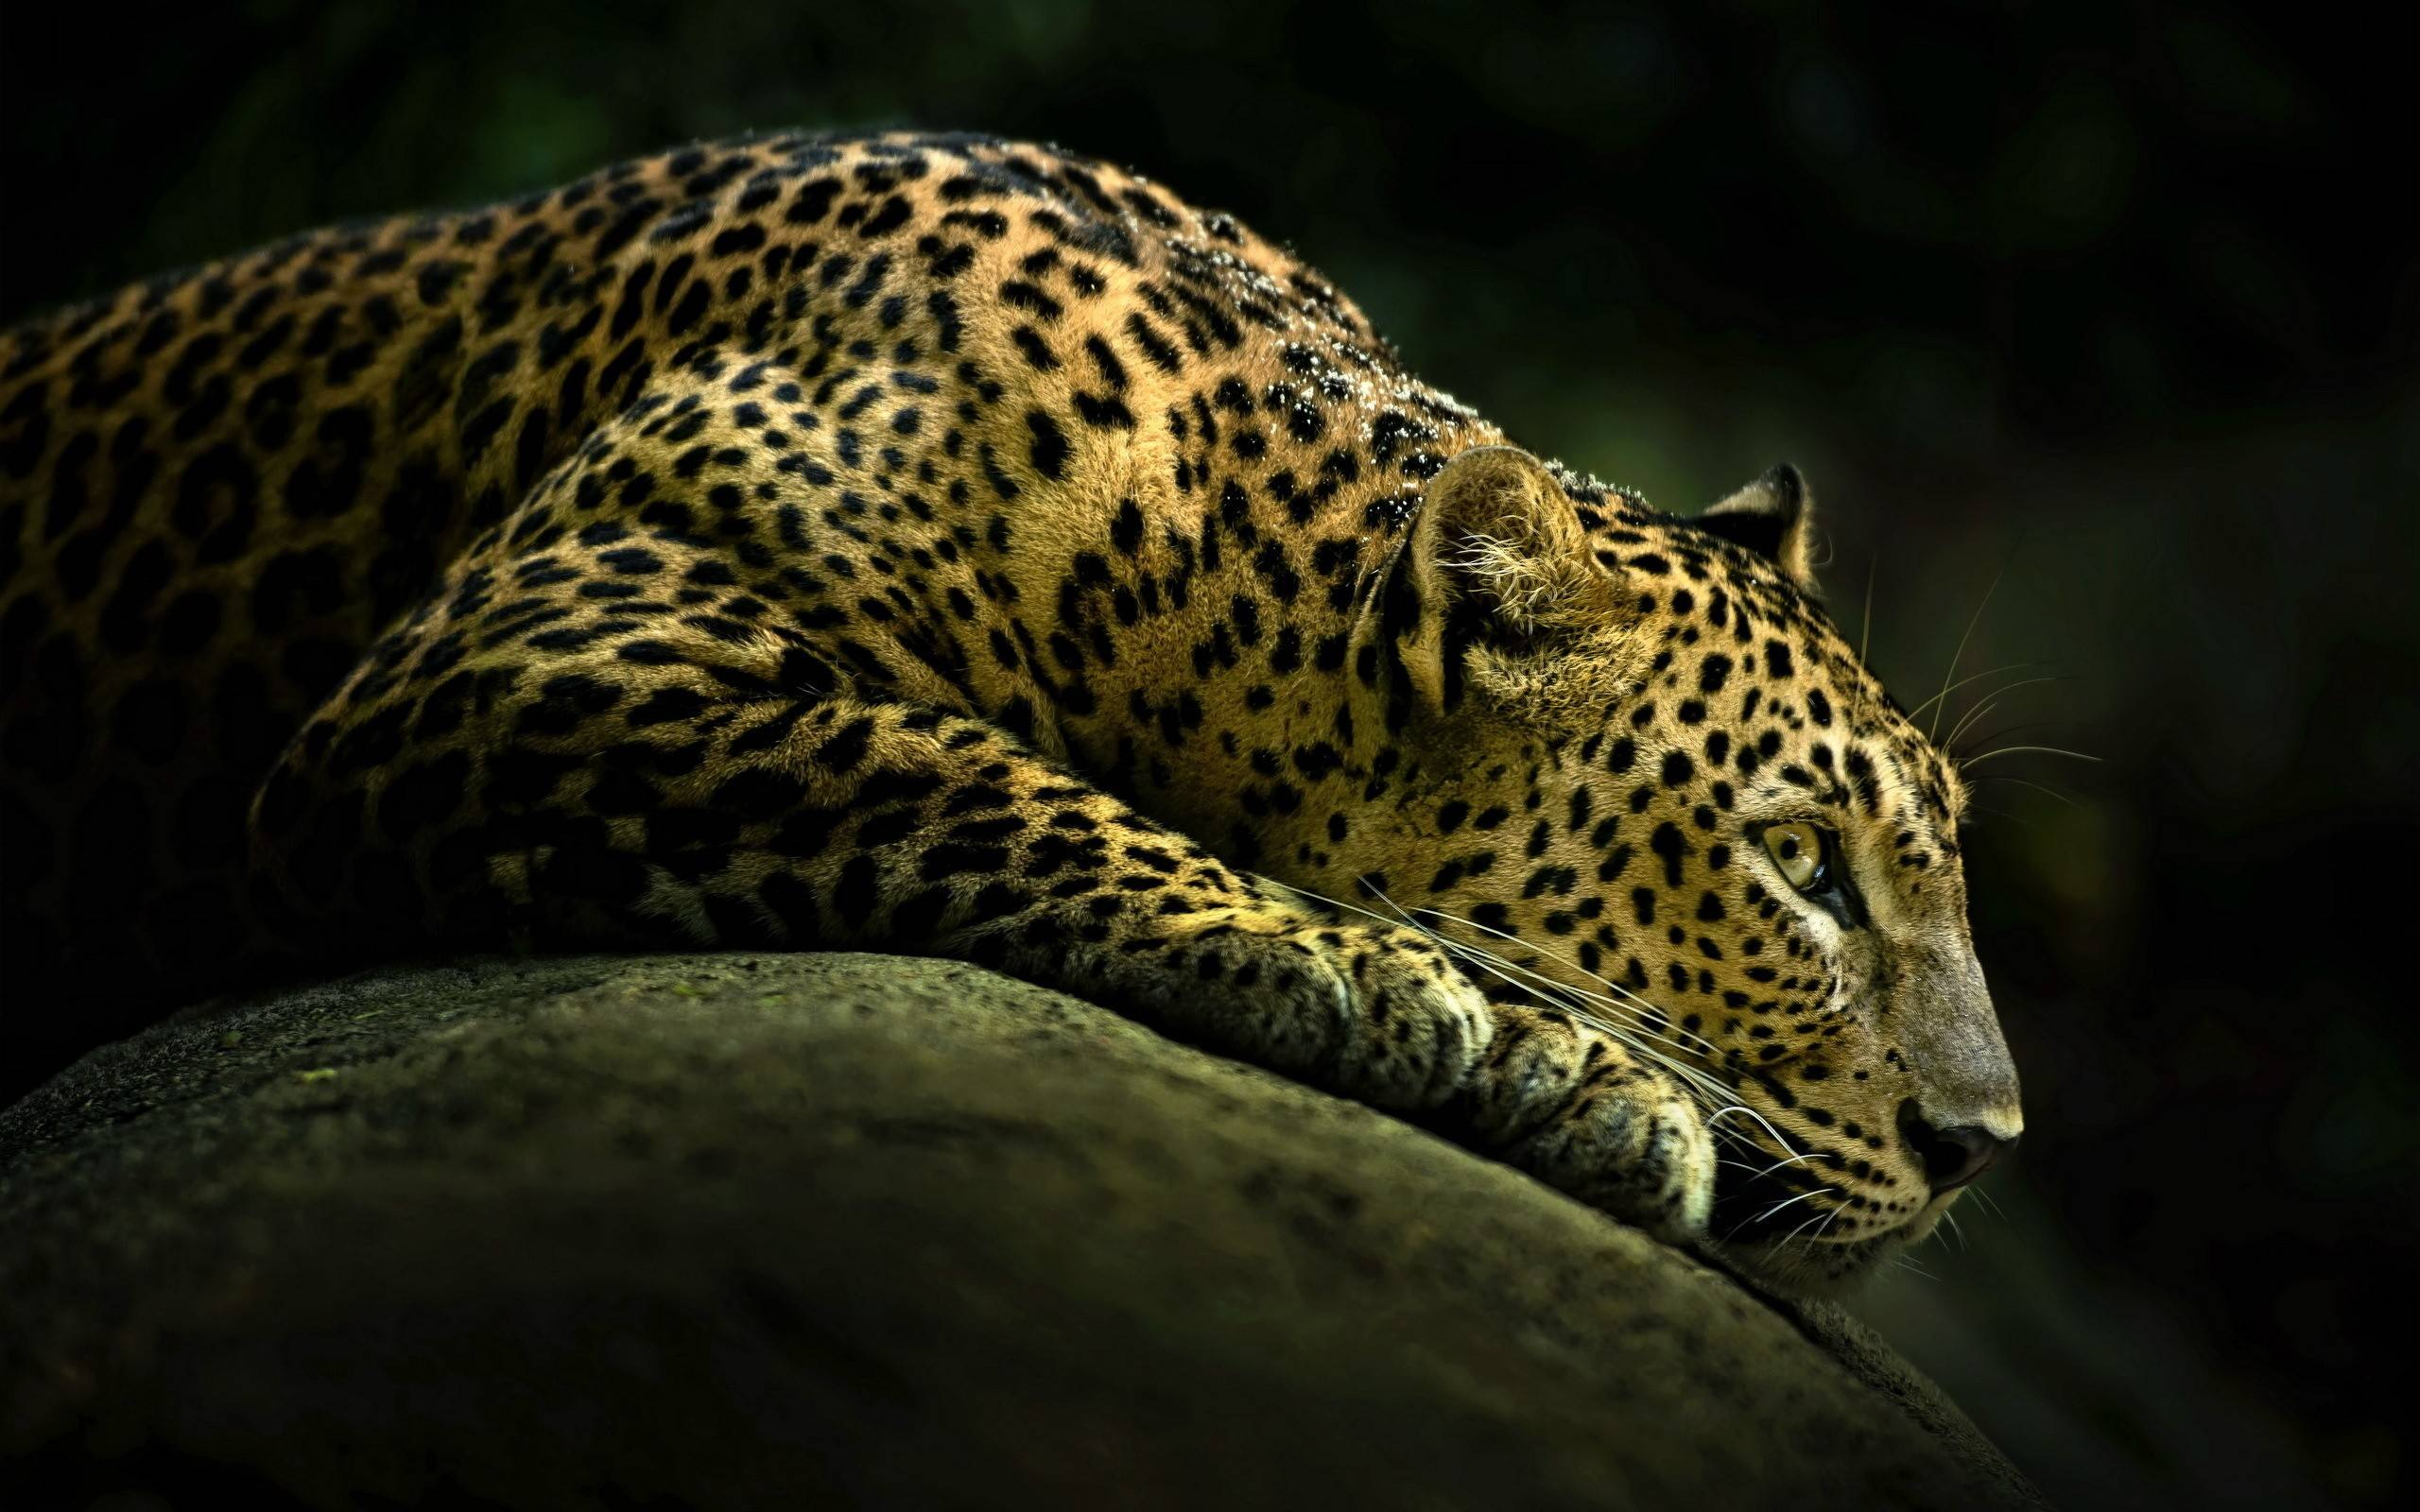 Animals wallpaper set 15 awesome wallpapers - Jaguar animal hd wallpapers ...